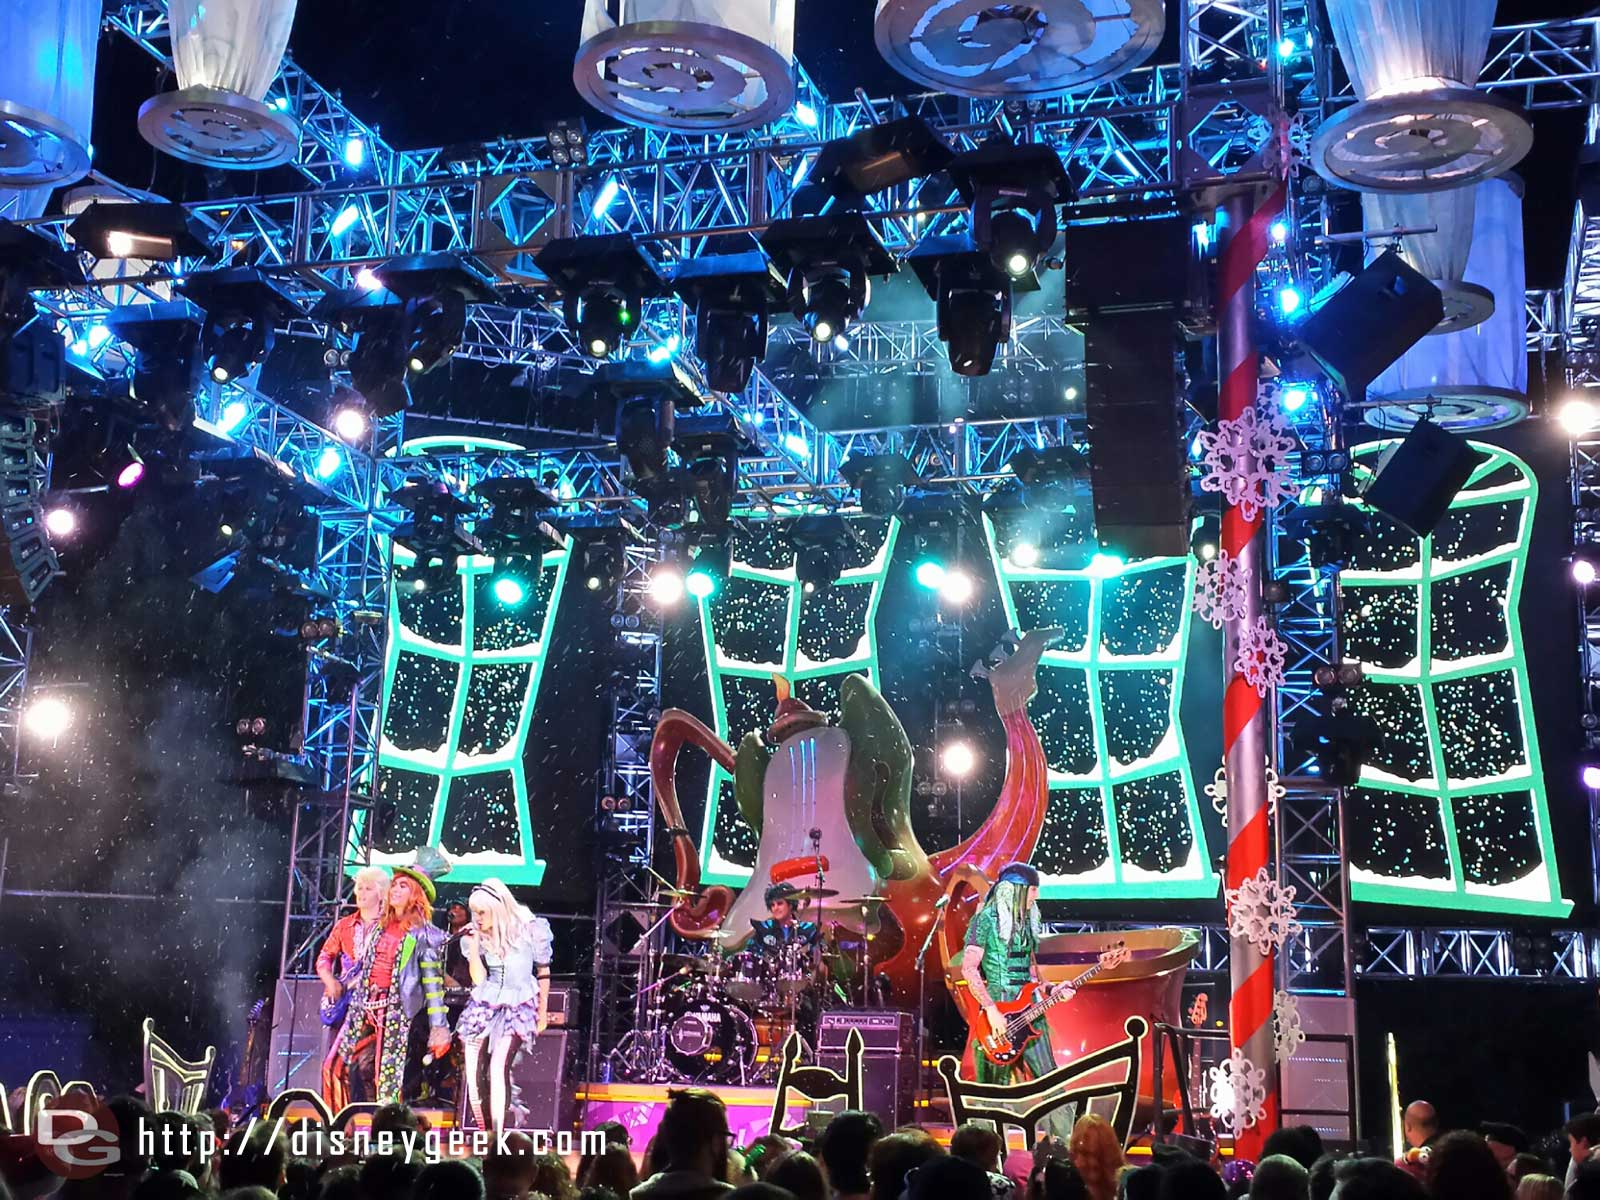 Snow at the #MadTParty to conclude their set